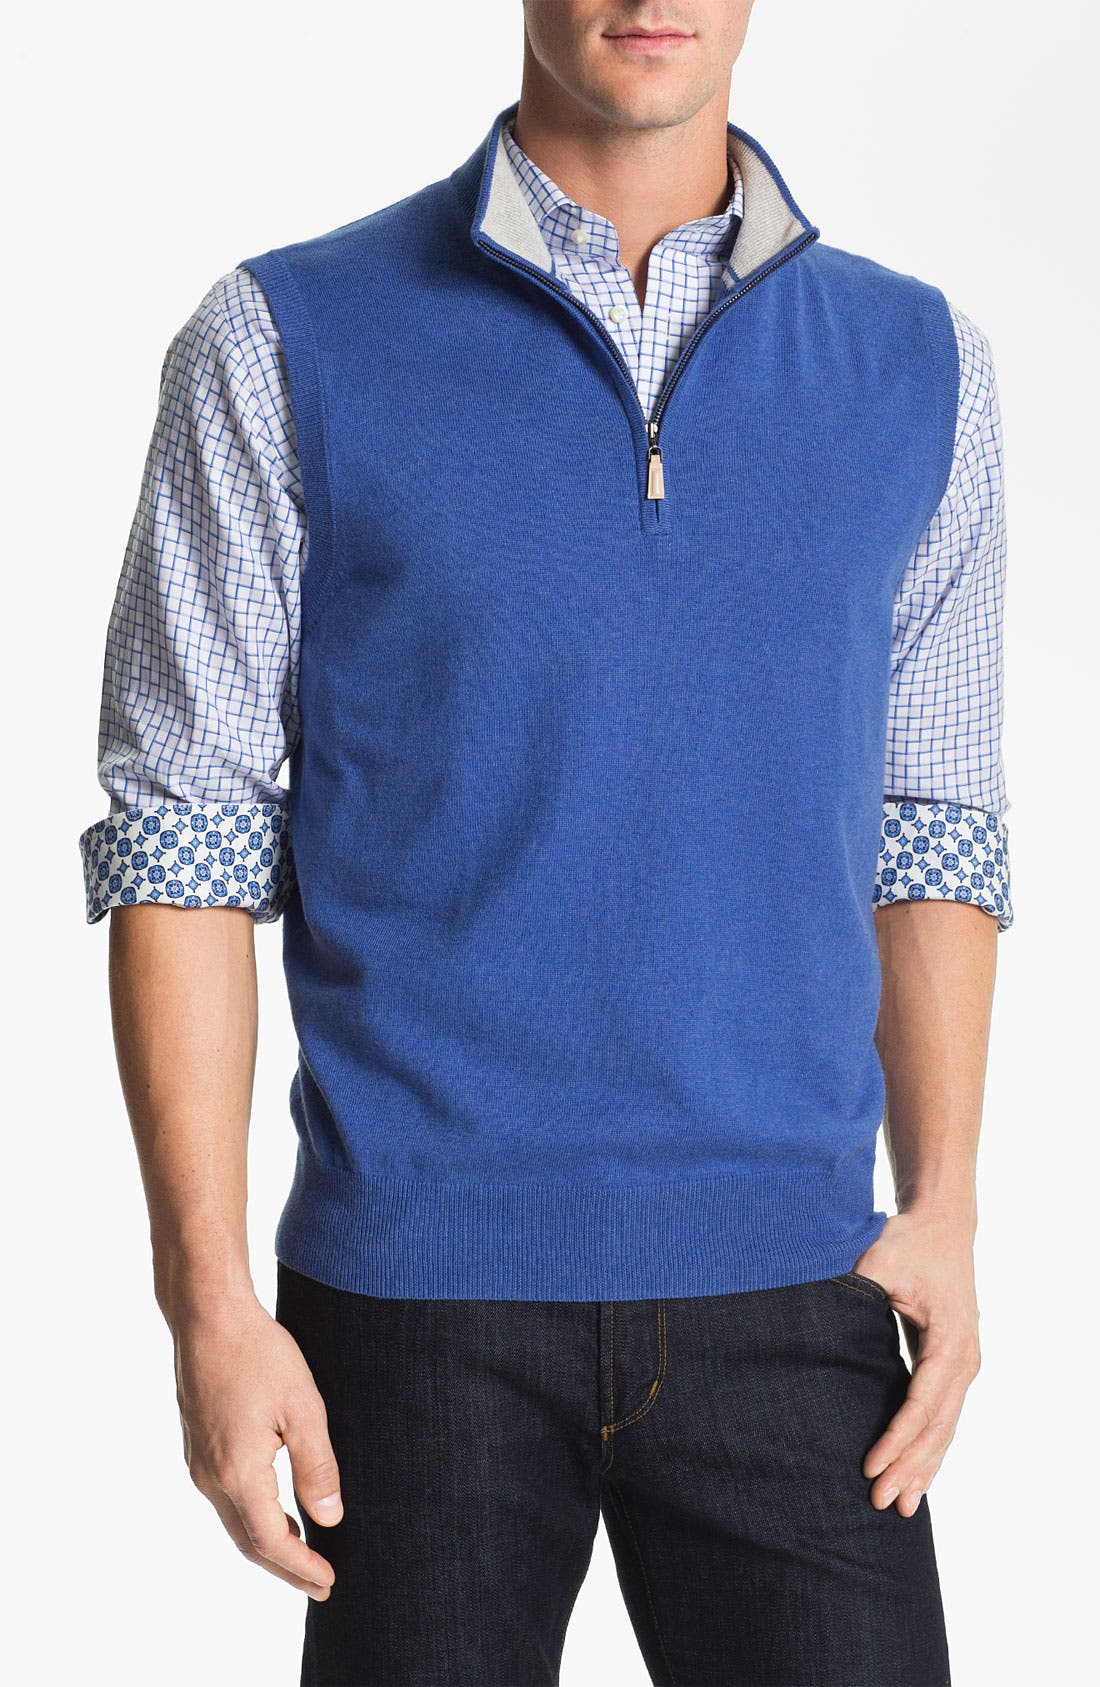 Quarter Zip Cotton & Cashmere Sweater Vest,                             Main thumbnail 1, color,                             413